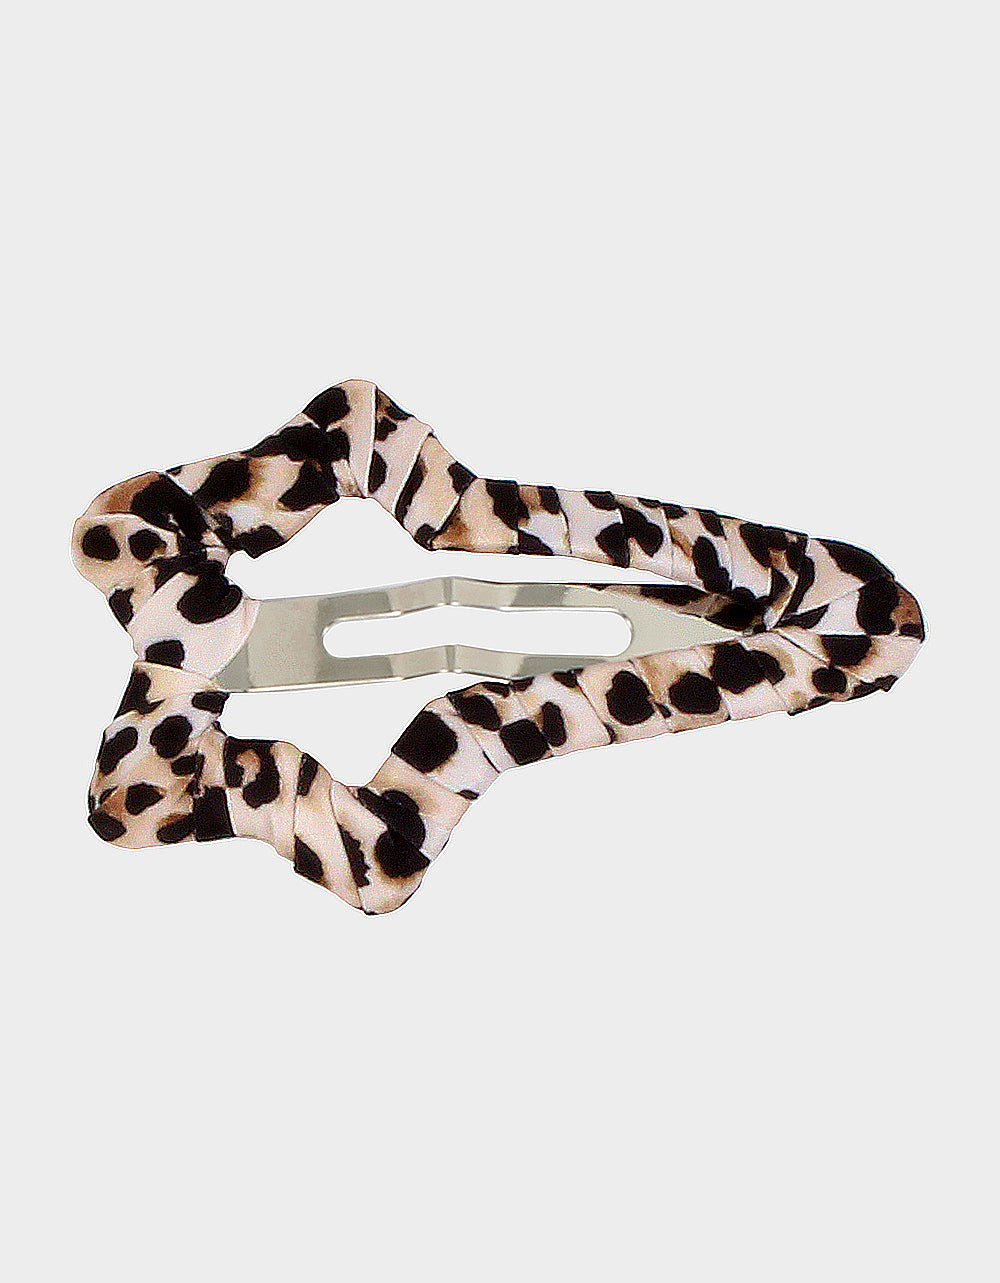 SUPERSTAR BETSEY HAIR CLIP LEOPARD - JEWELRY - Betsey Johnson